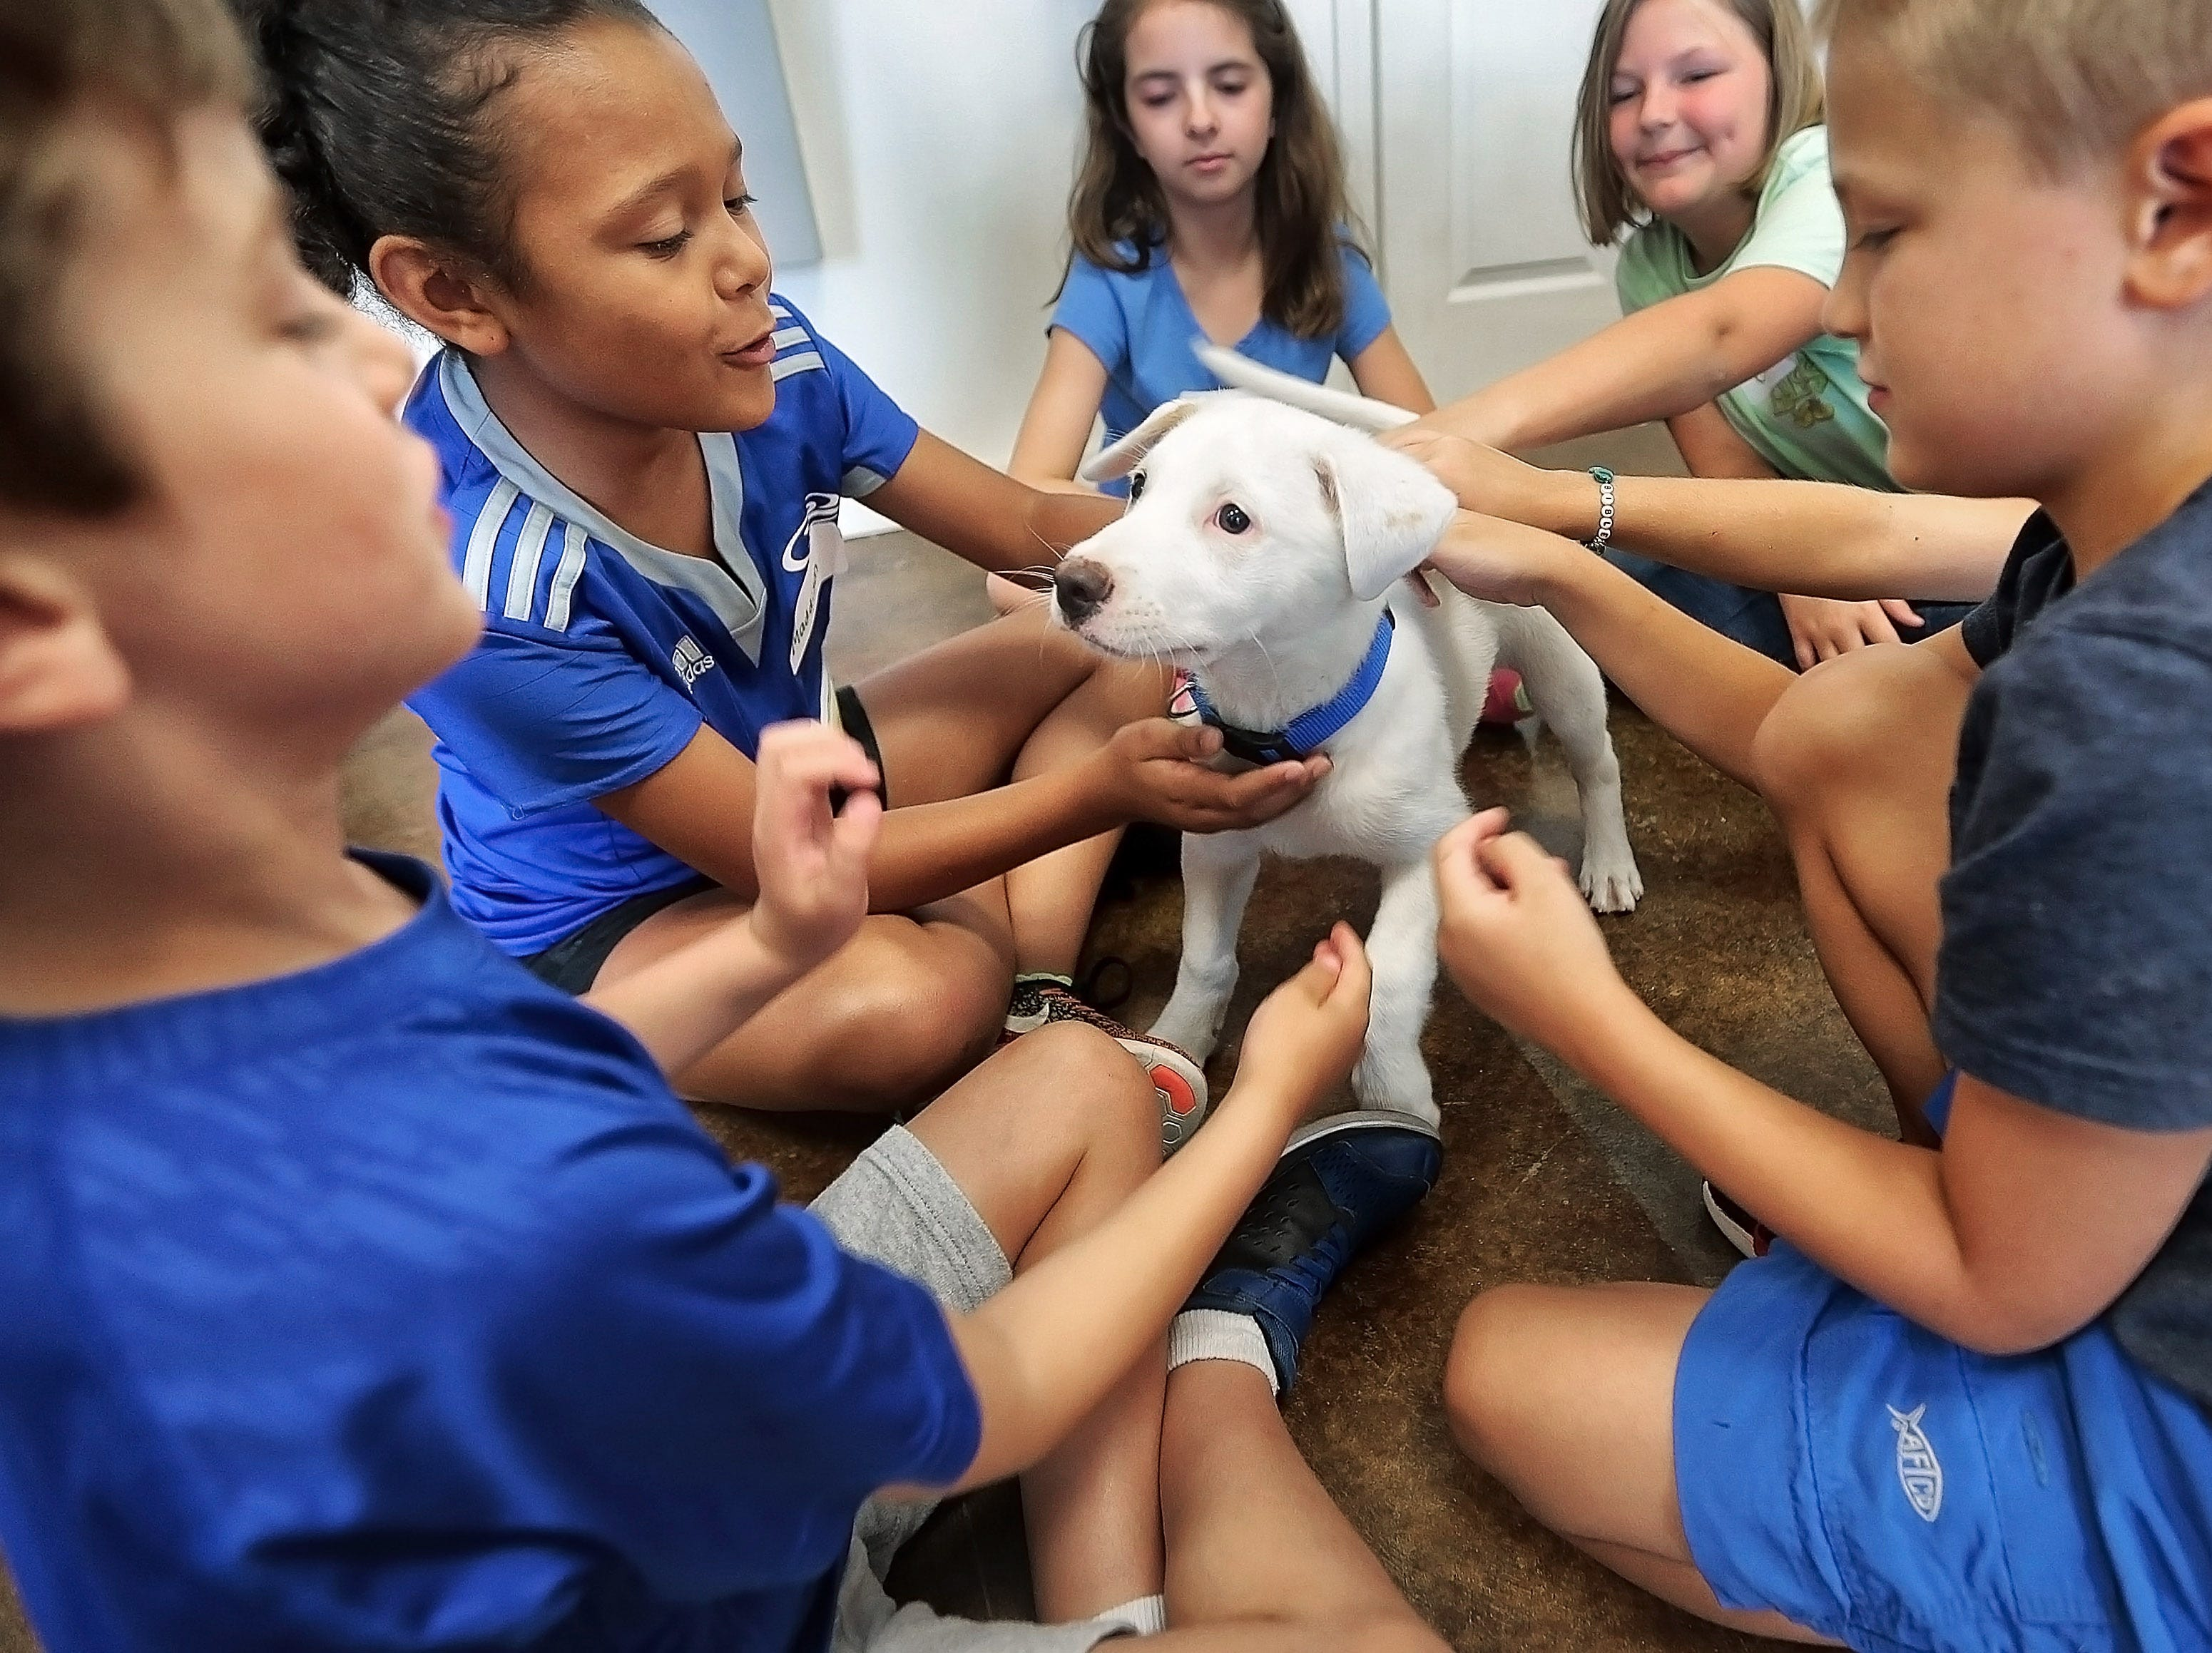 Day campers get some hands-on time with a puppy named Jazzy during the one-day kid's camp at the pet adoption center in Carriage Crossing hosted by Collierville Animal Services. Participants at the annual camp learn about owning pets, make animal crafts and get to play with puppies and kittens.